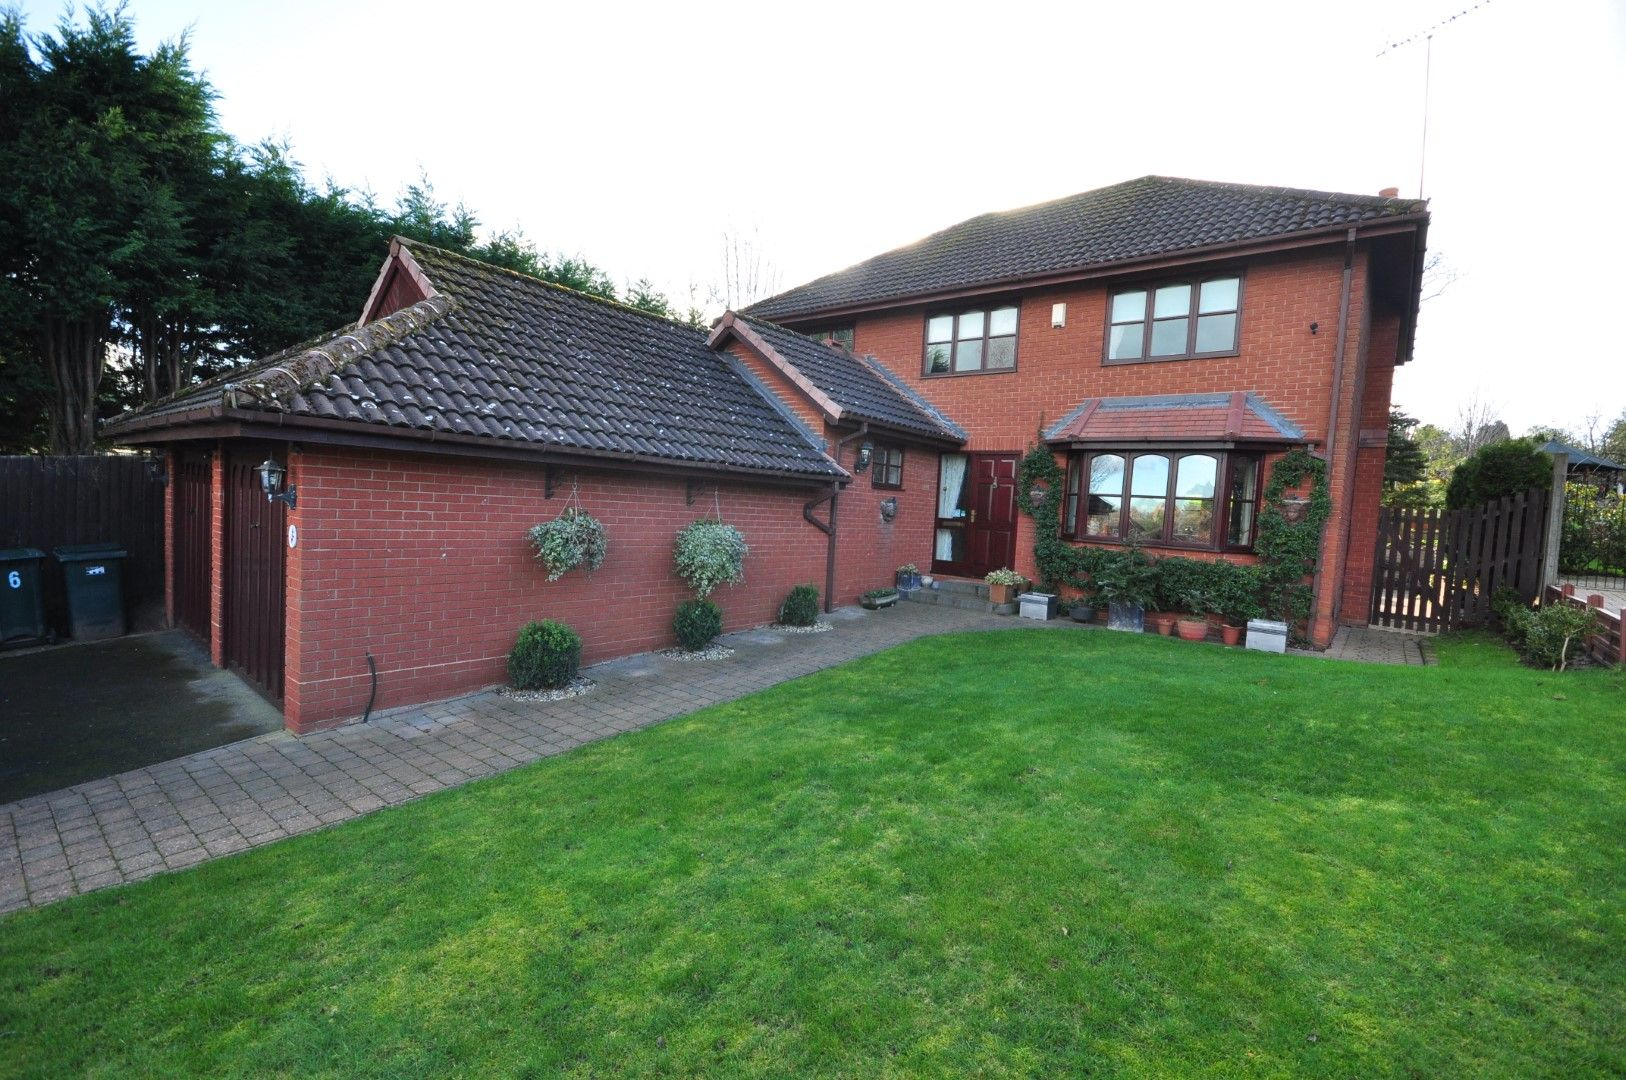 4 Bed Detached House For Sale - Photograph 1